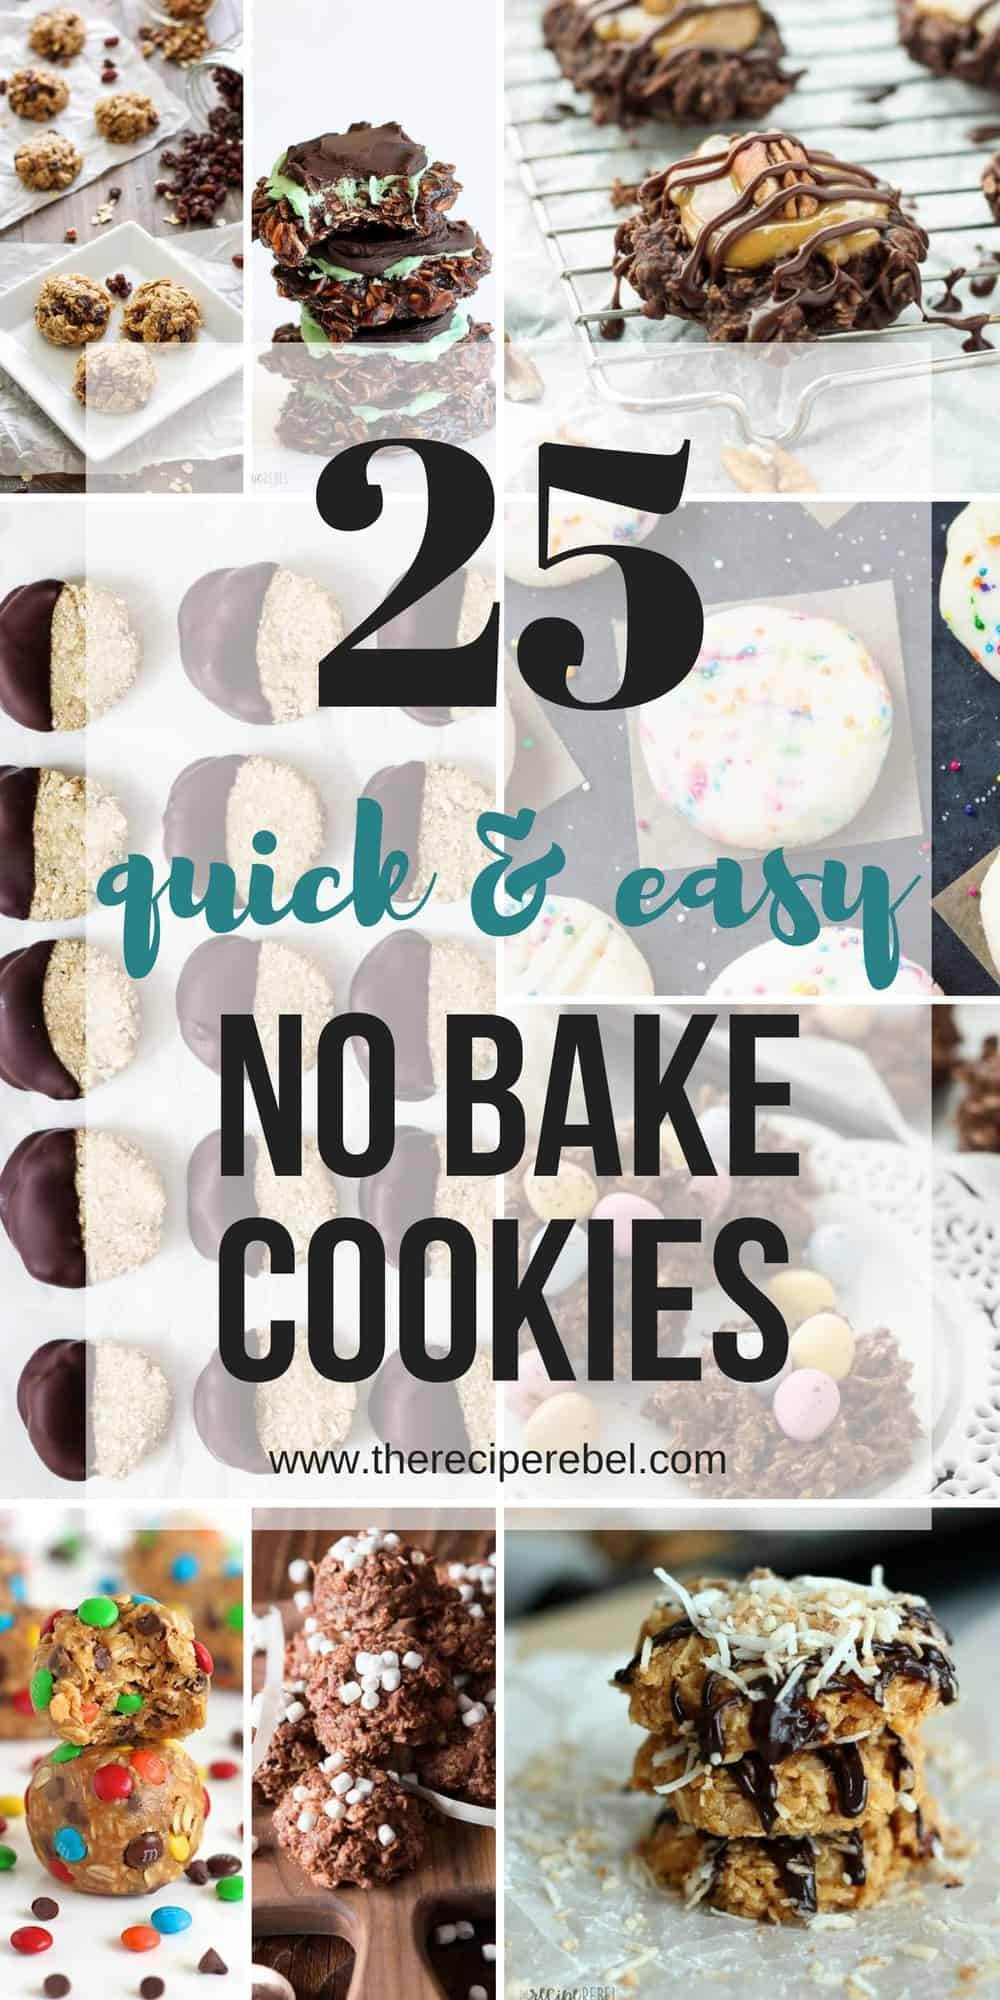 These No Bake Cookies recipes are all you need for summer! They are quick, easy, and no need to turn on the oven when the sun is shining! No Bake Oatmeal Cookies, No Bake Peanut Butter Cookies, Chocolate No Bake Cookies.... they're all here, plus a few new twists like mint chocolate and toasted coconut. All the easy no bake cookies you need!